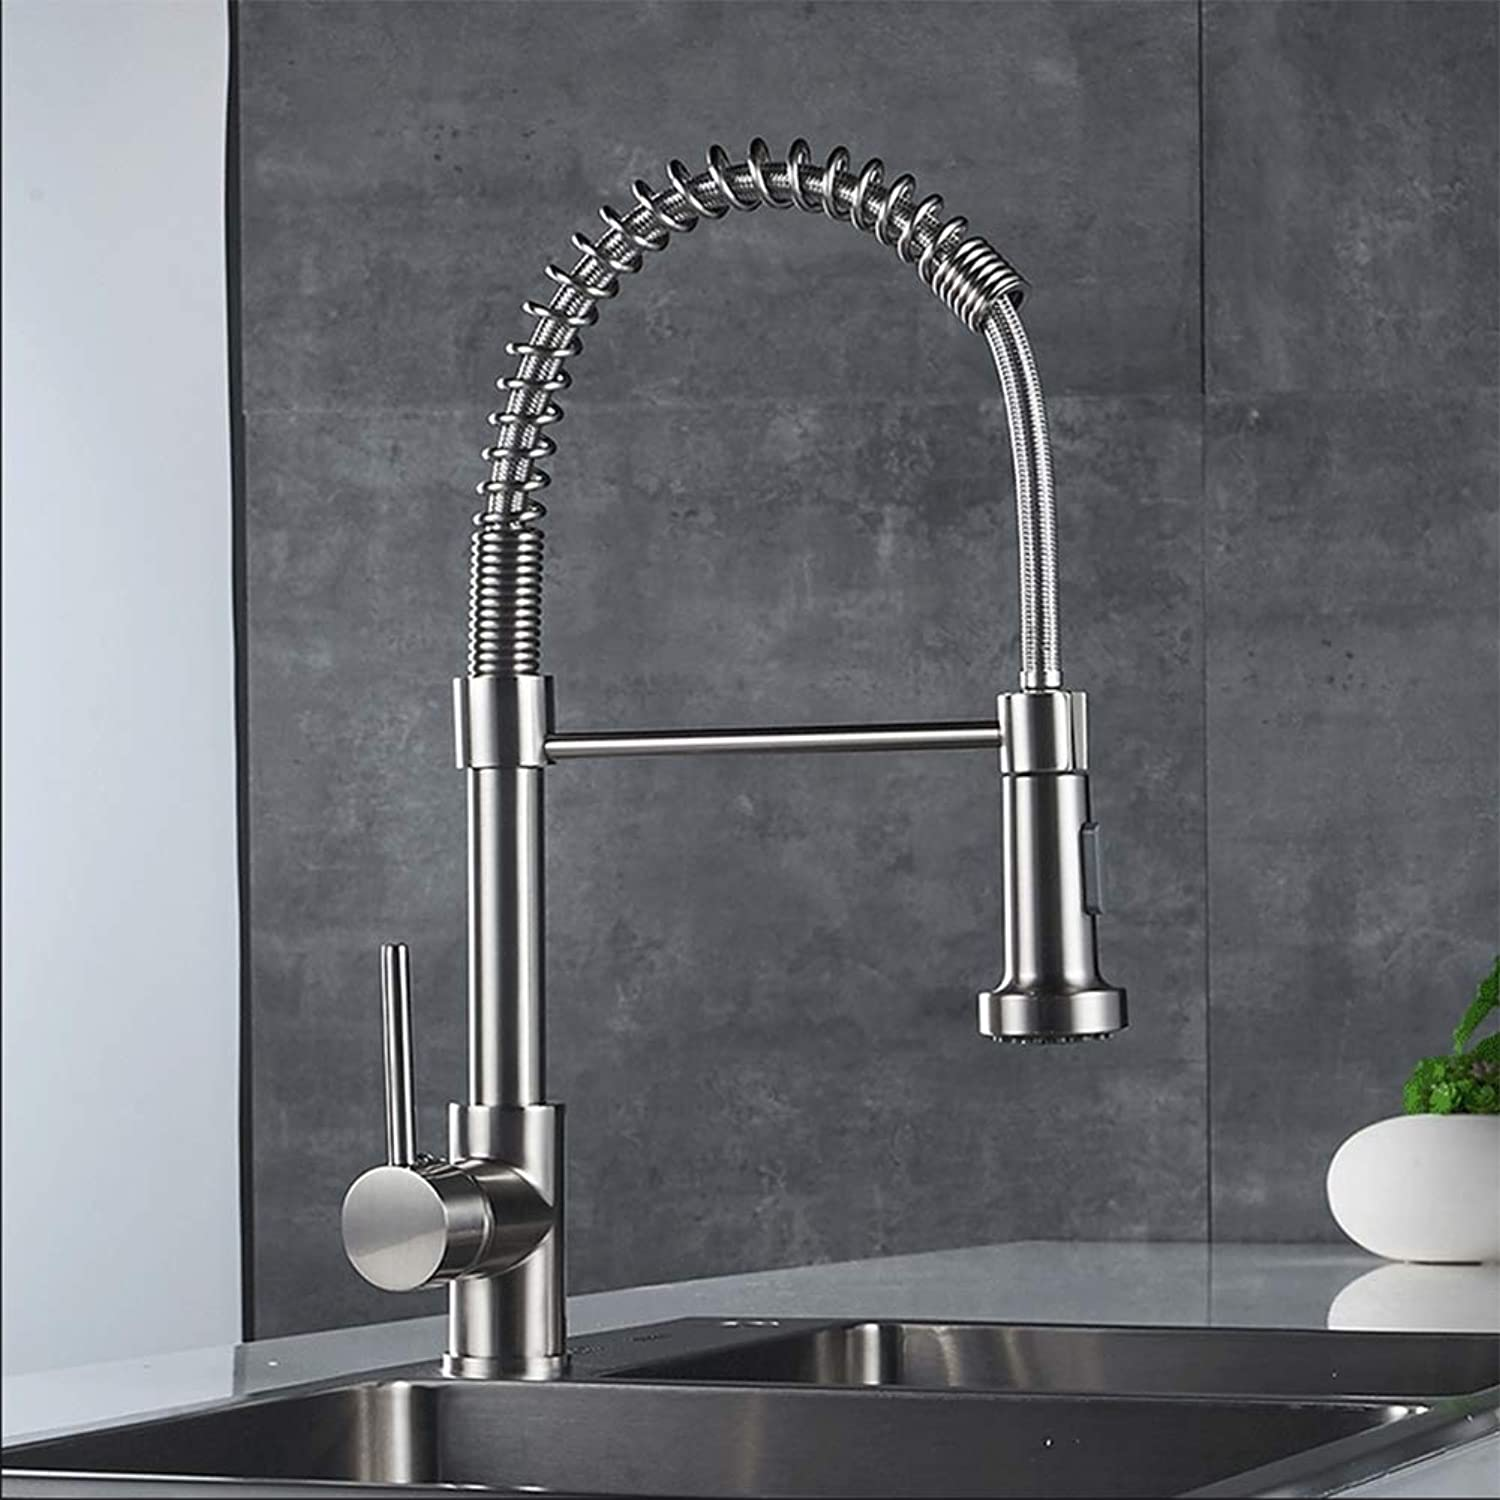 ZMHome Kitchen Faucet Spring Style Pull Out All Around Swivel 2 Function Water Outlet Kitchen Mixer Taps,ChromeBrushed